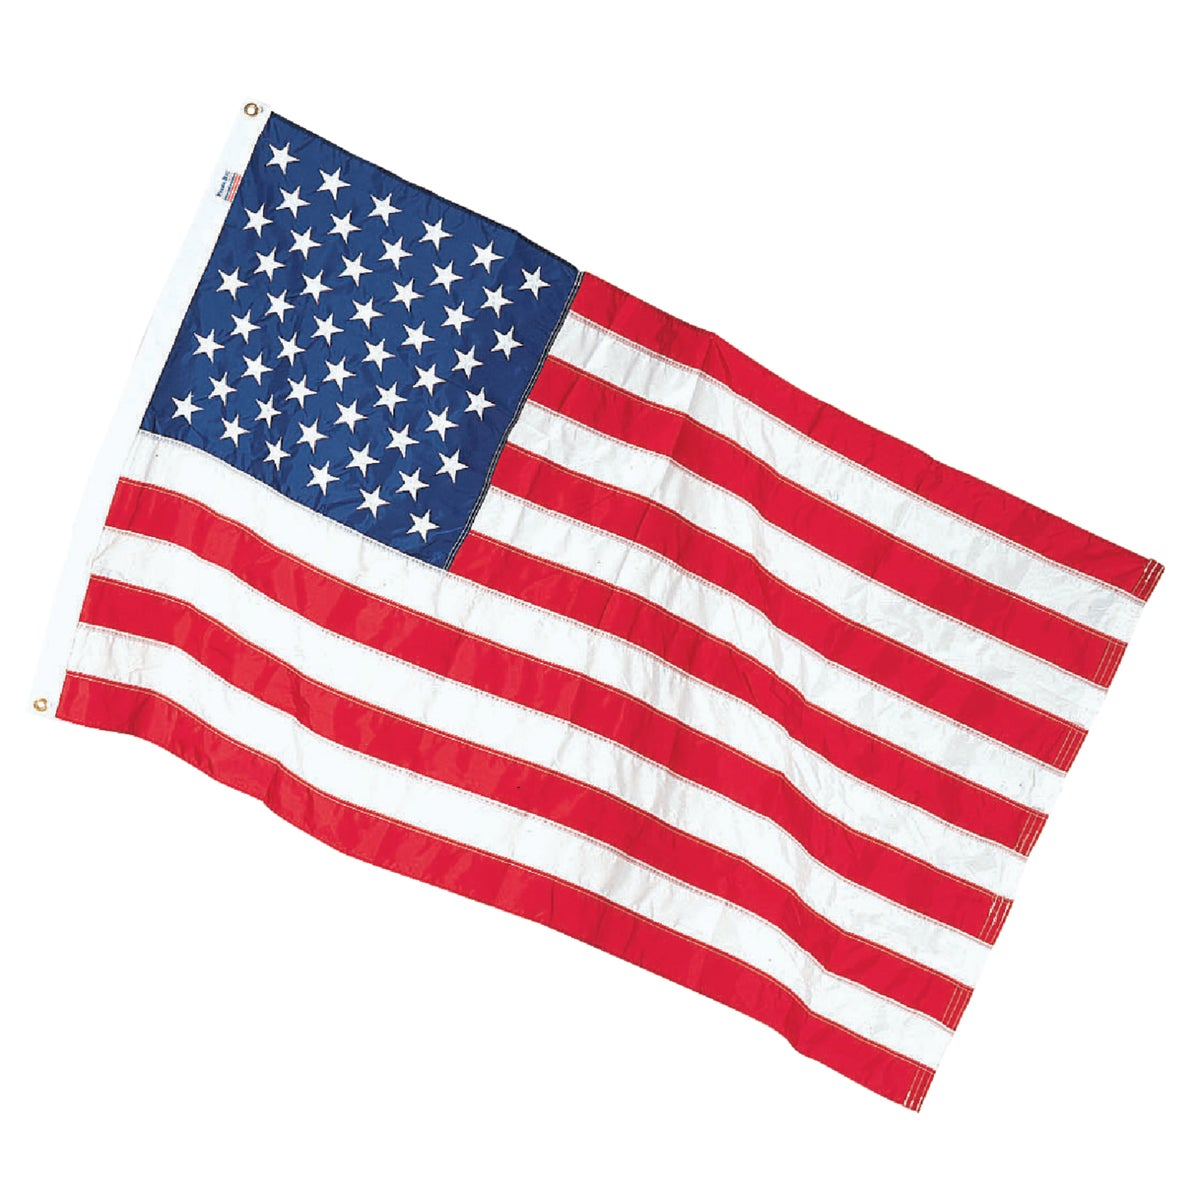 3X5 NYLON FLAG - USPN-1 by Valley Forge Flag